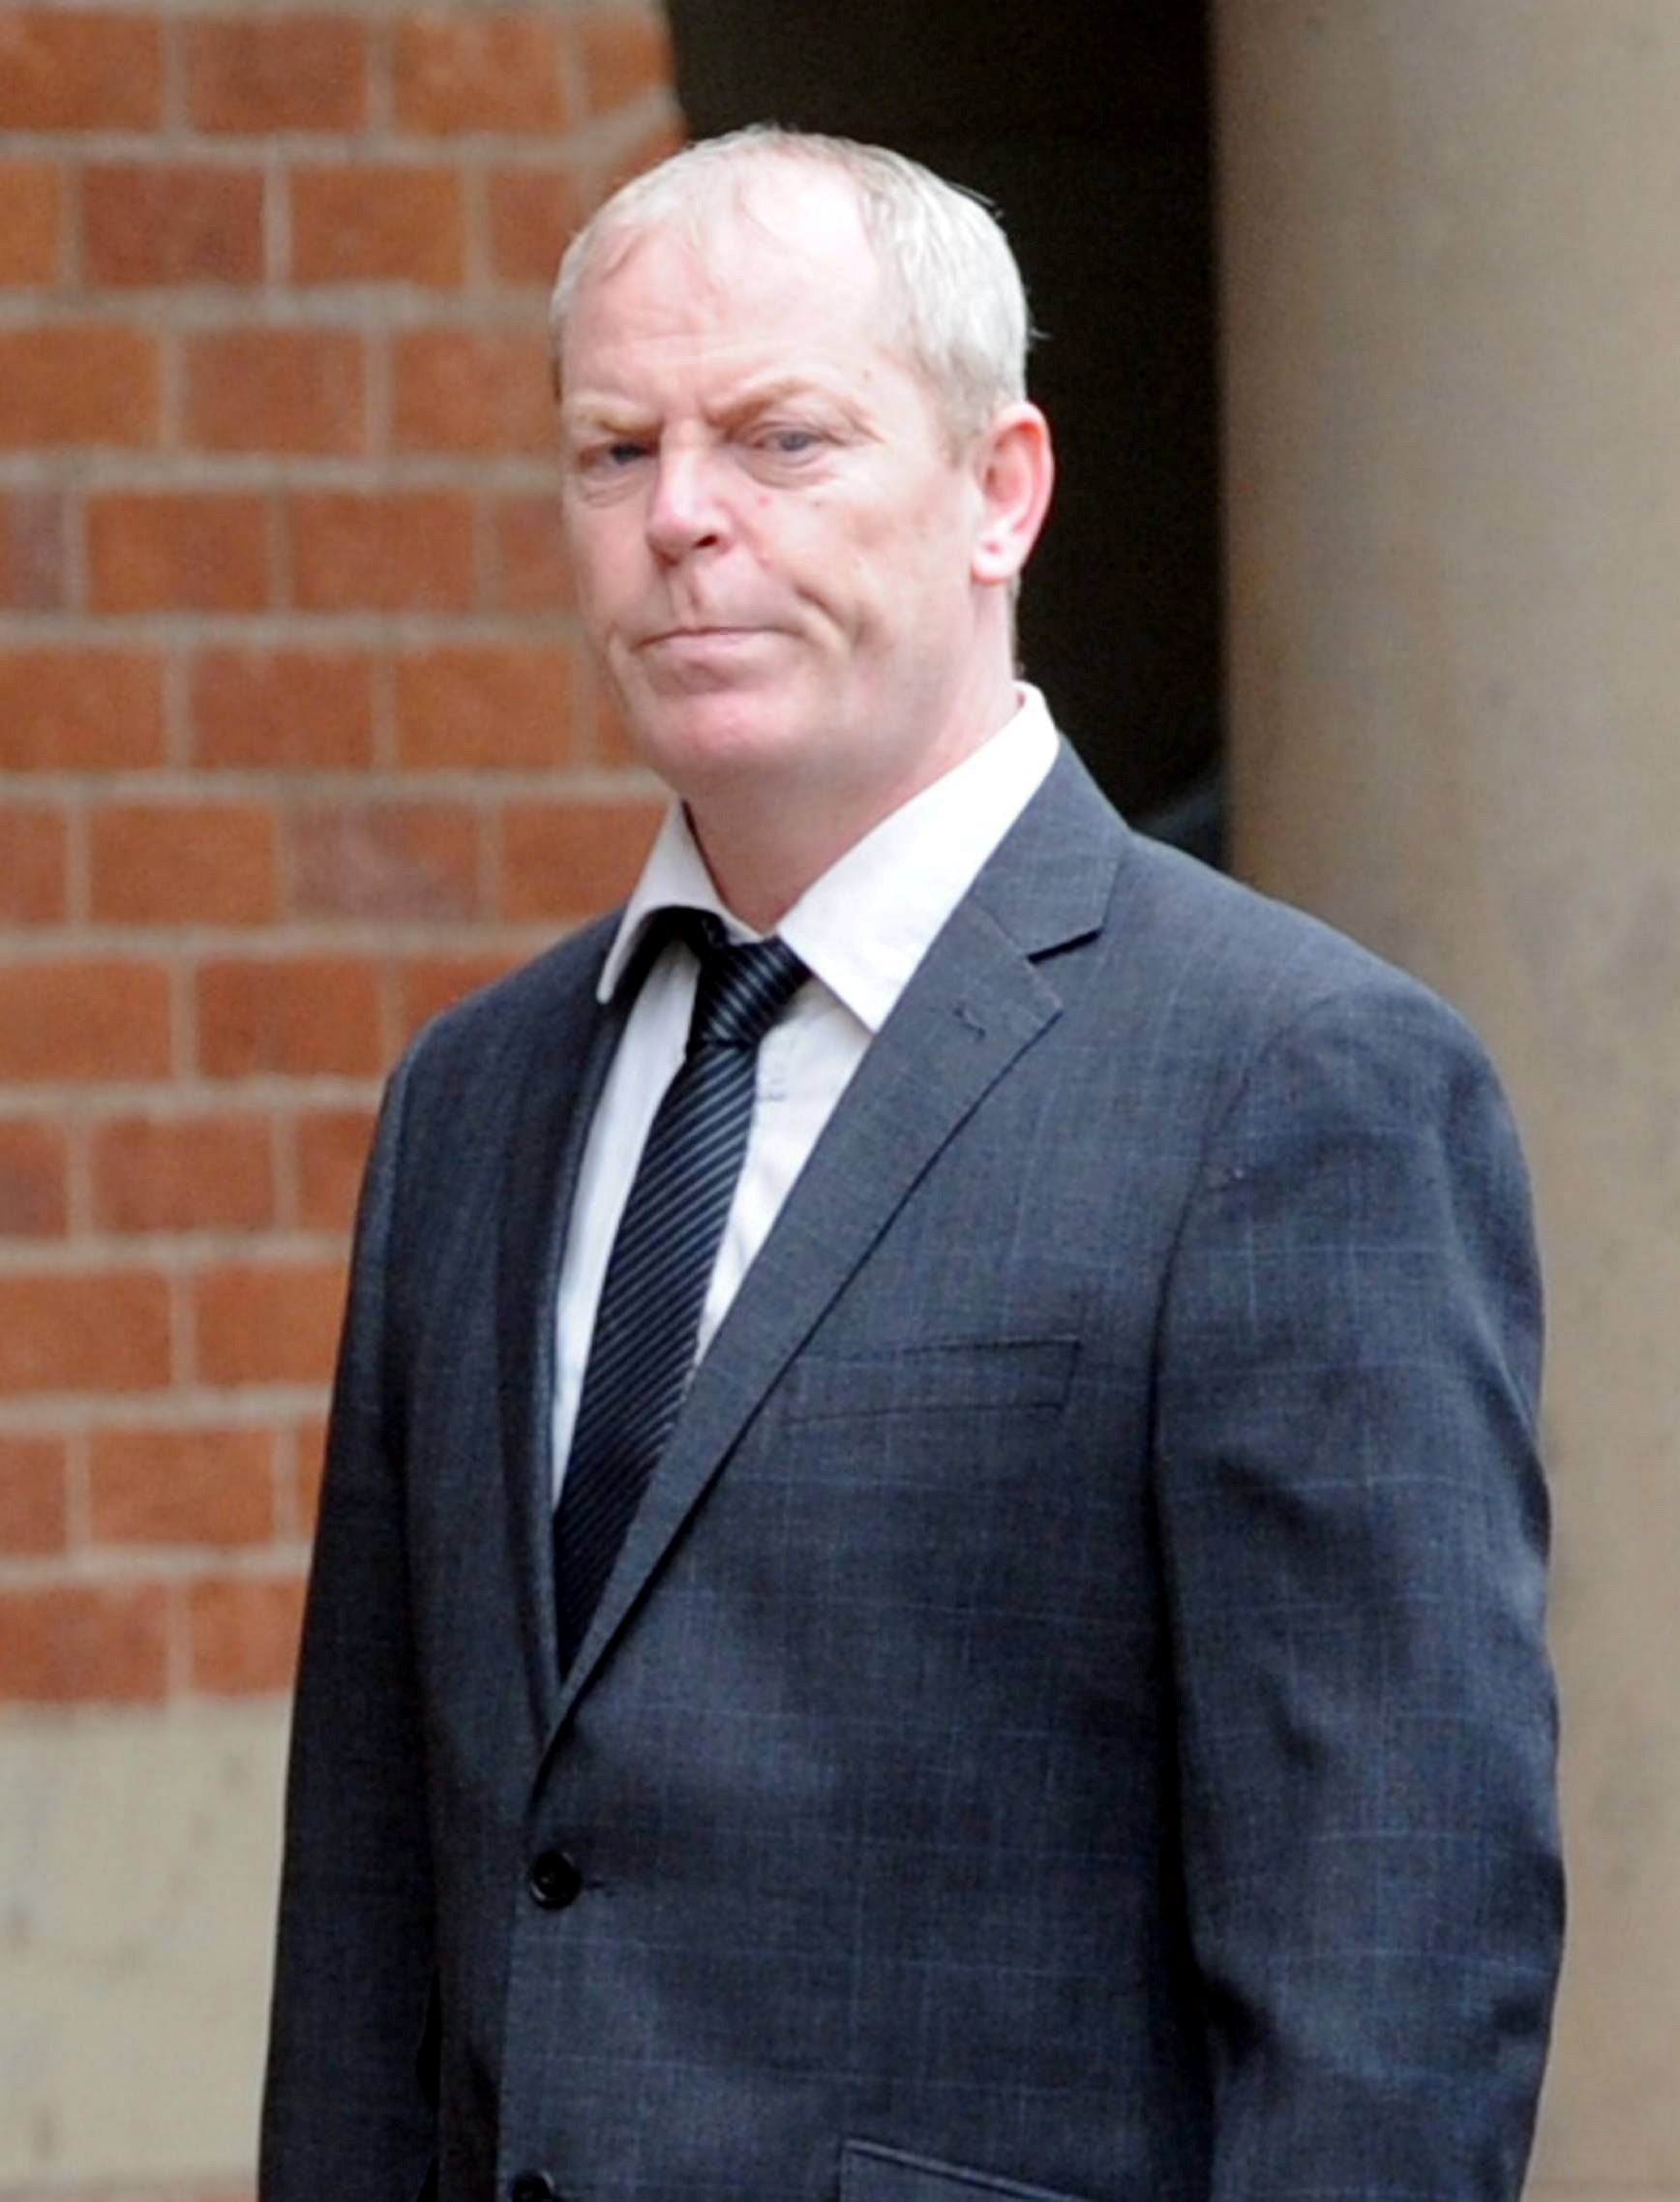 RAPE TRIAL: Former darts player Tony Eccles